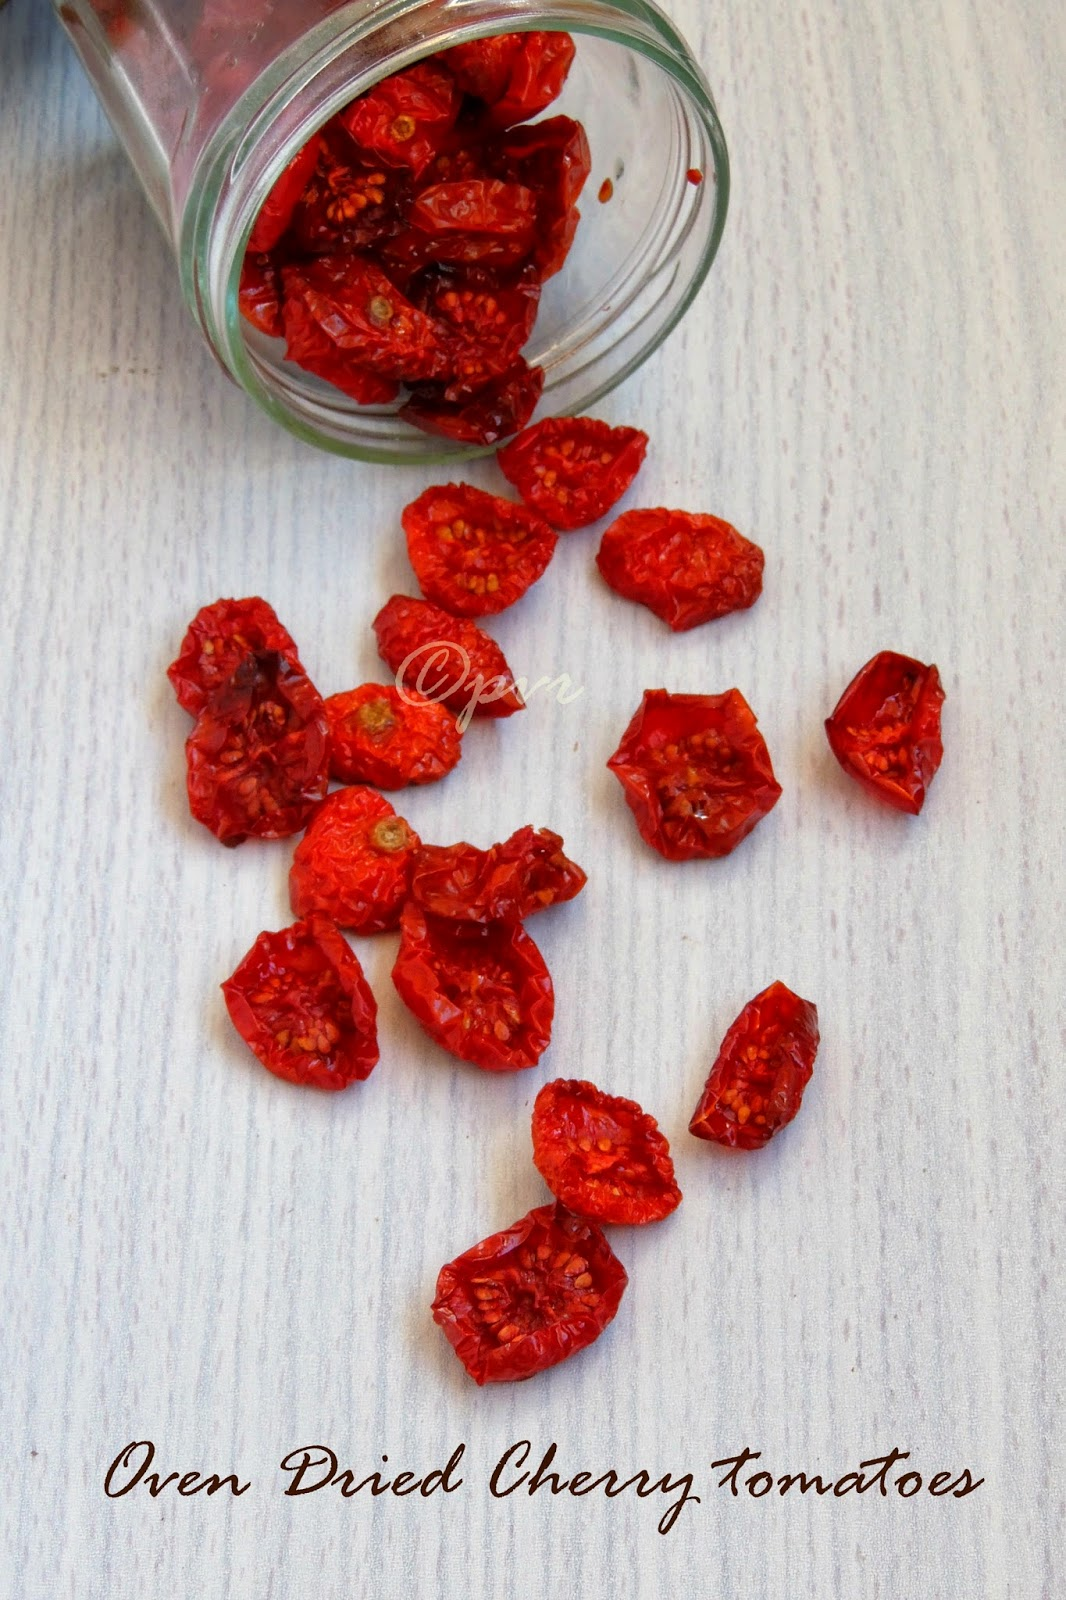 Oil less oven dried cherry tomatoes, oven dried cherry tomatoes,slow oven dried cherry tomatoes